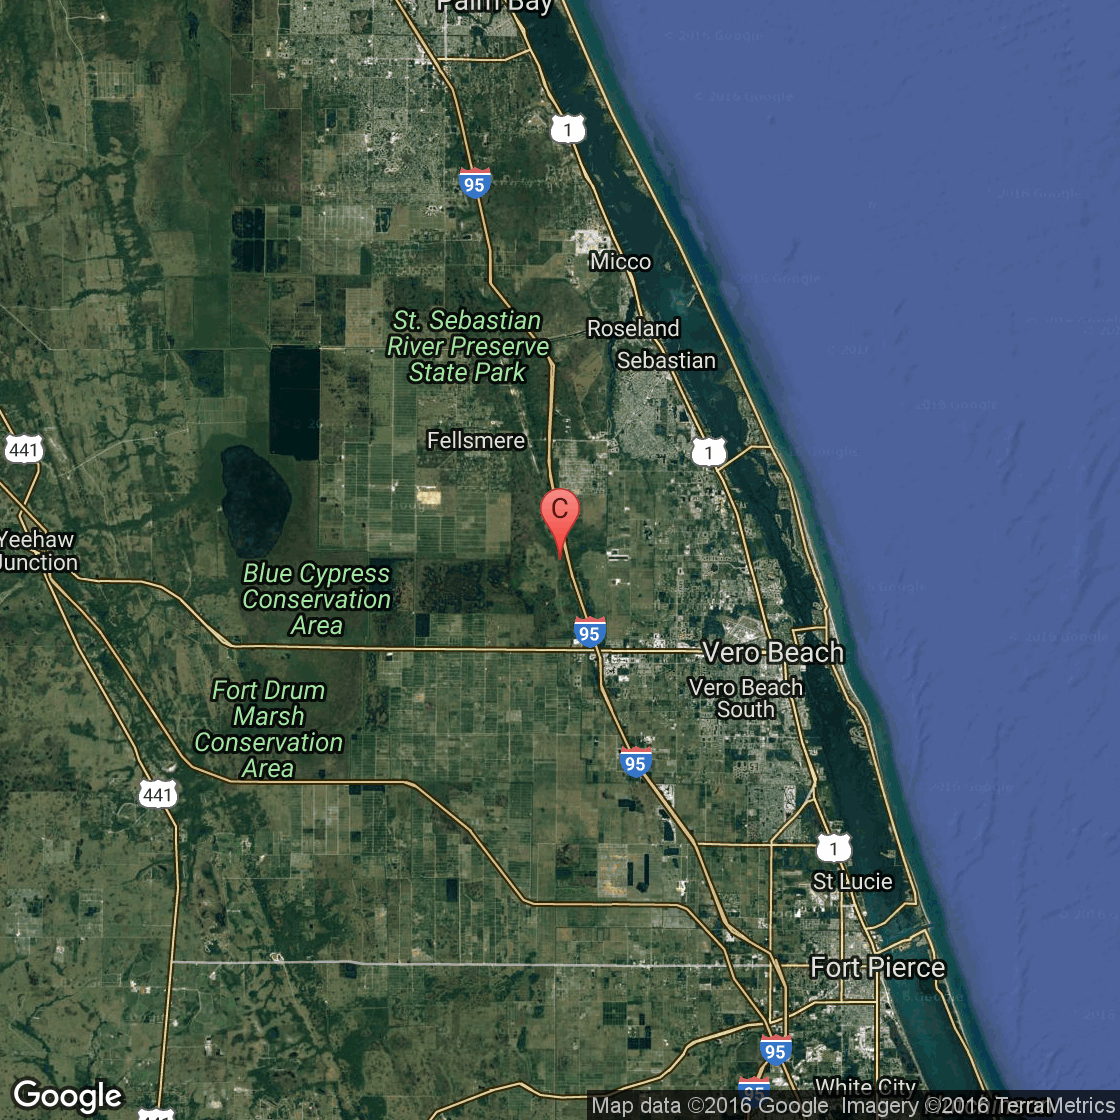 Haunted House York University: Haunted Houses In Indian River County, Florida